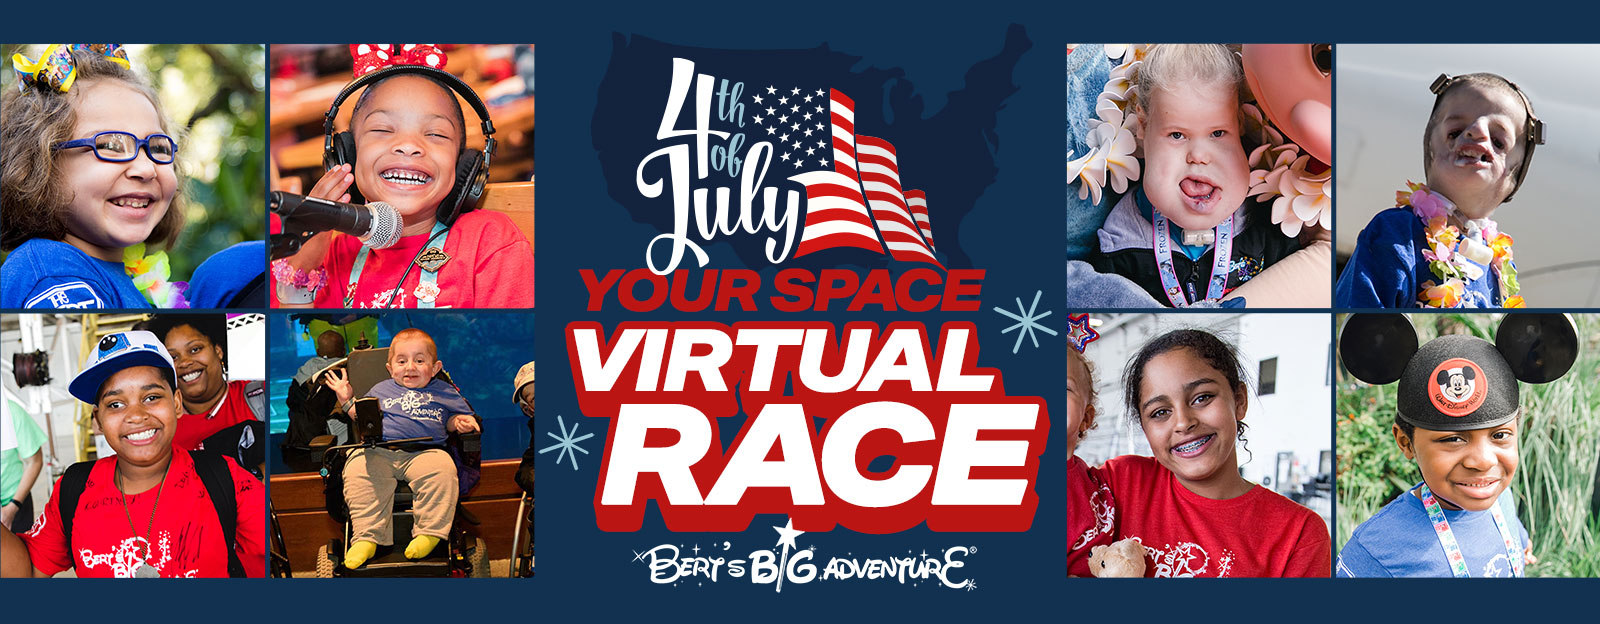 4th of July Your Space Virtual Race